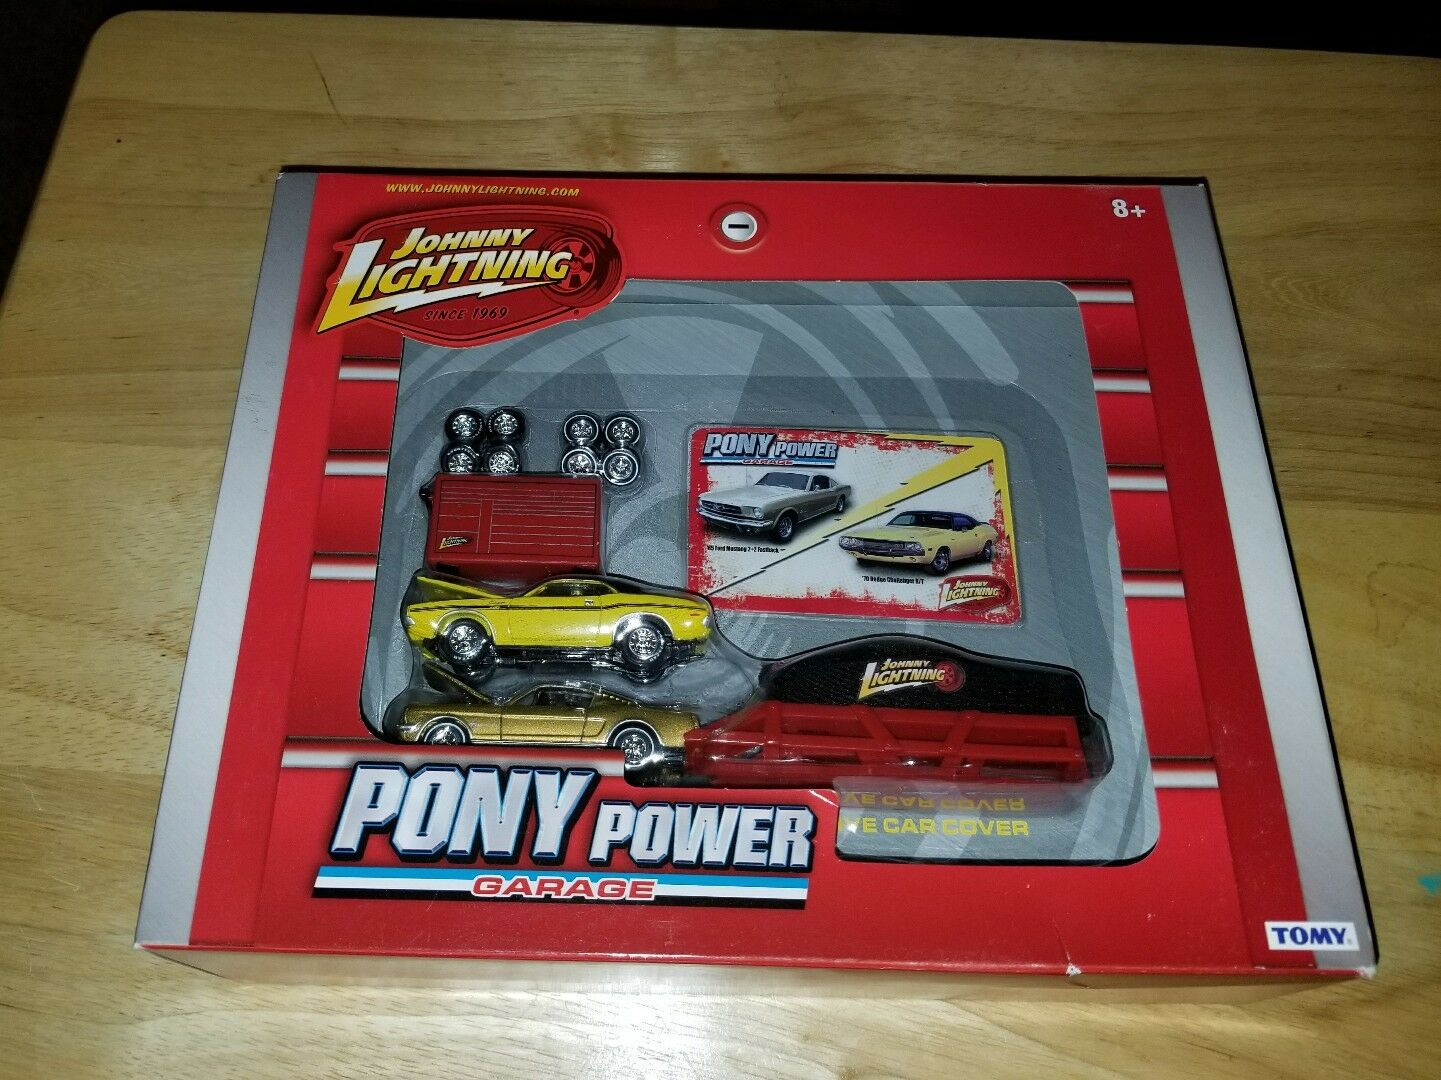 Johnny ljusning Pony Power Garage (Mustang, Challenger) Die cast Set 1 64 Ny